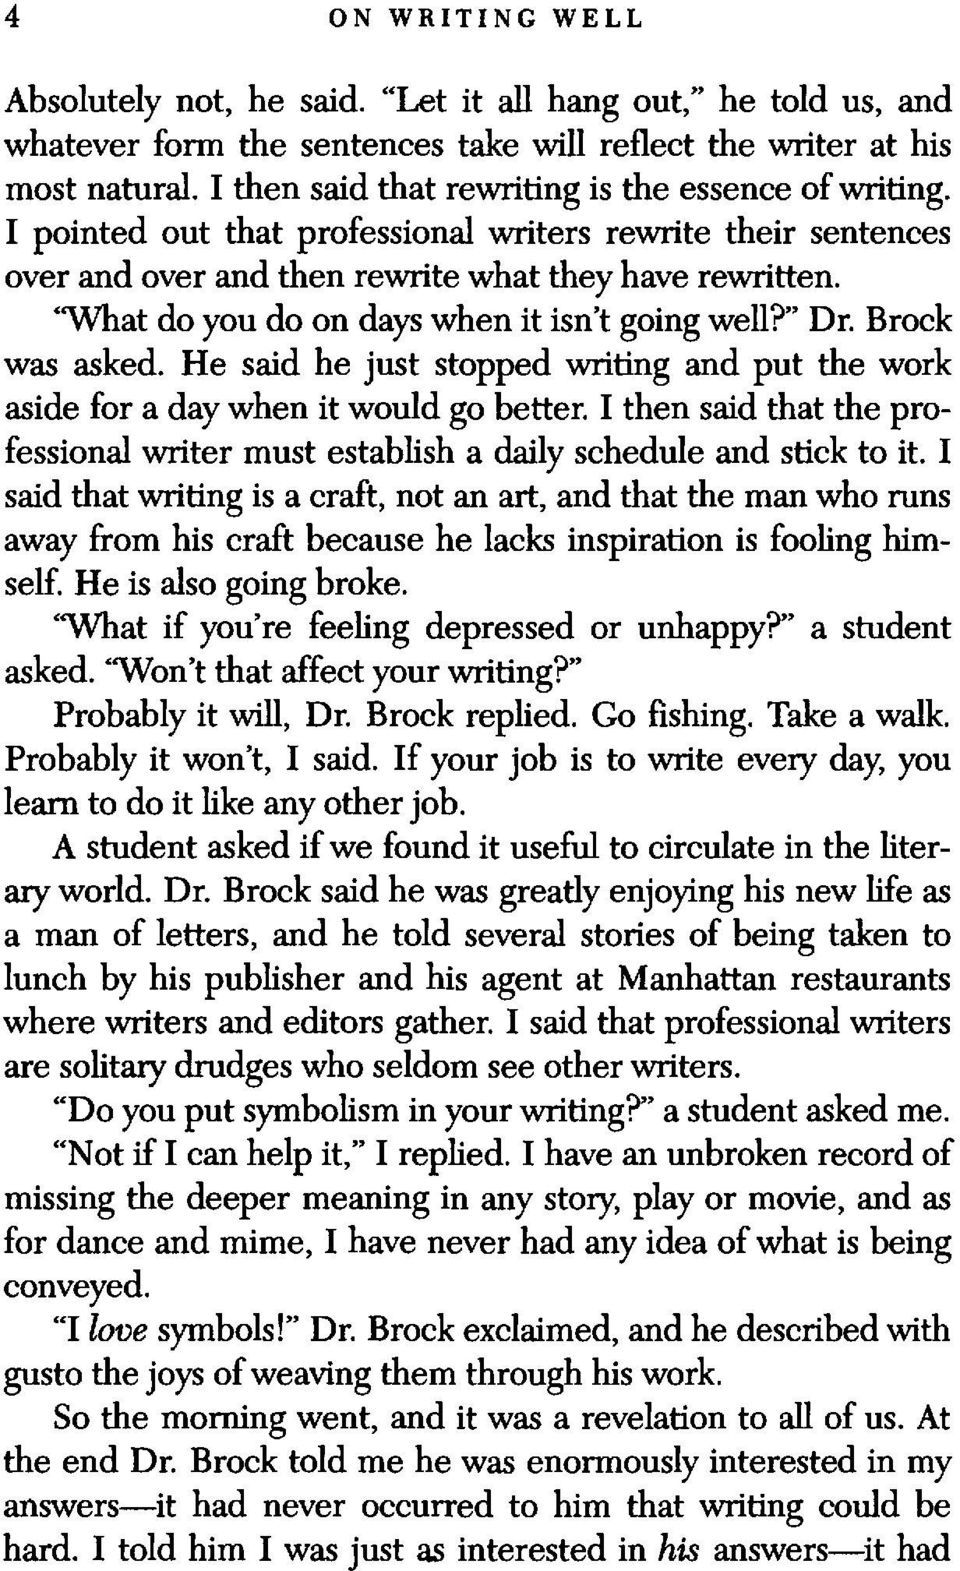 """What do you do on days when it isn't going well?"" Dr. Brock was asked. He said he just stopped writing and put the work aside for a day when it would go better."